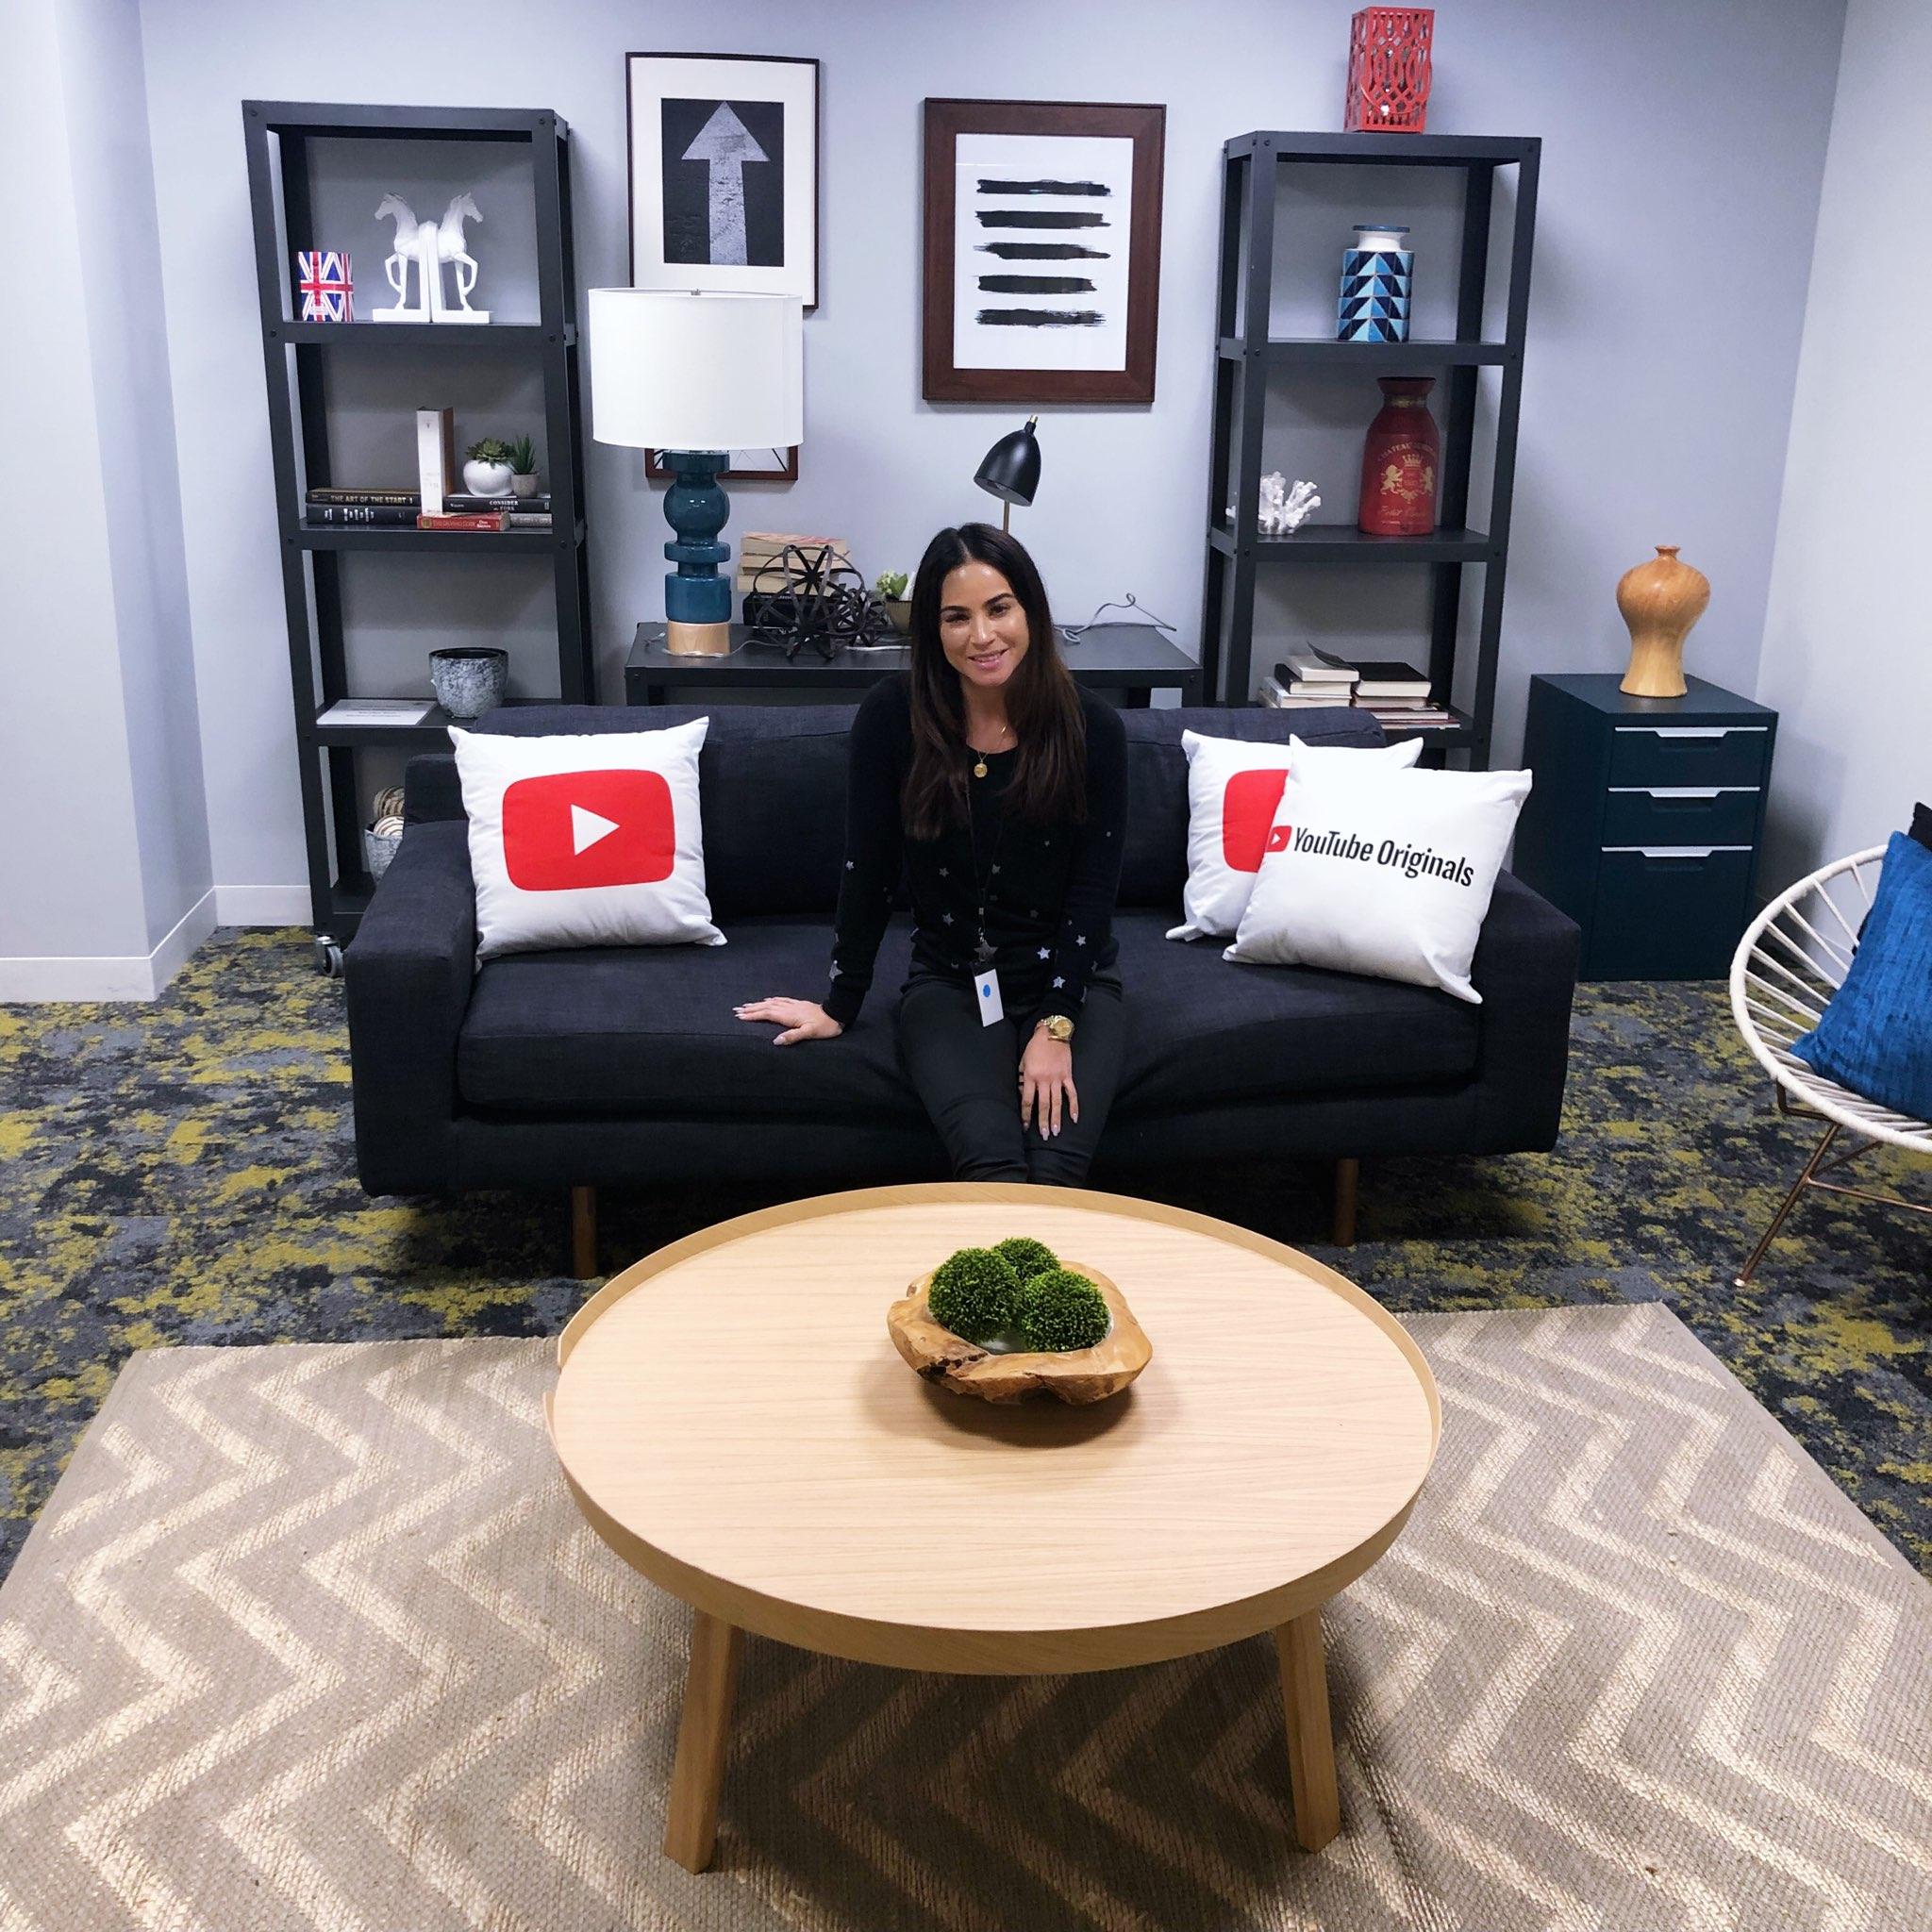 At YouTube in Los Angeles